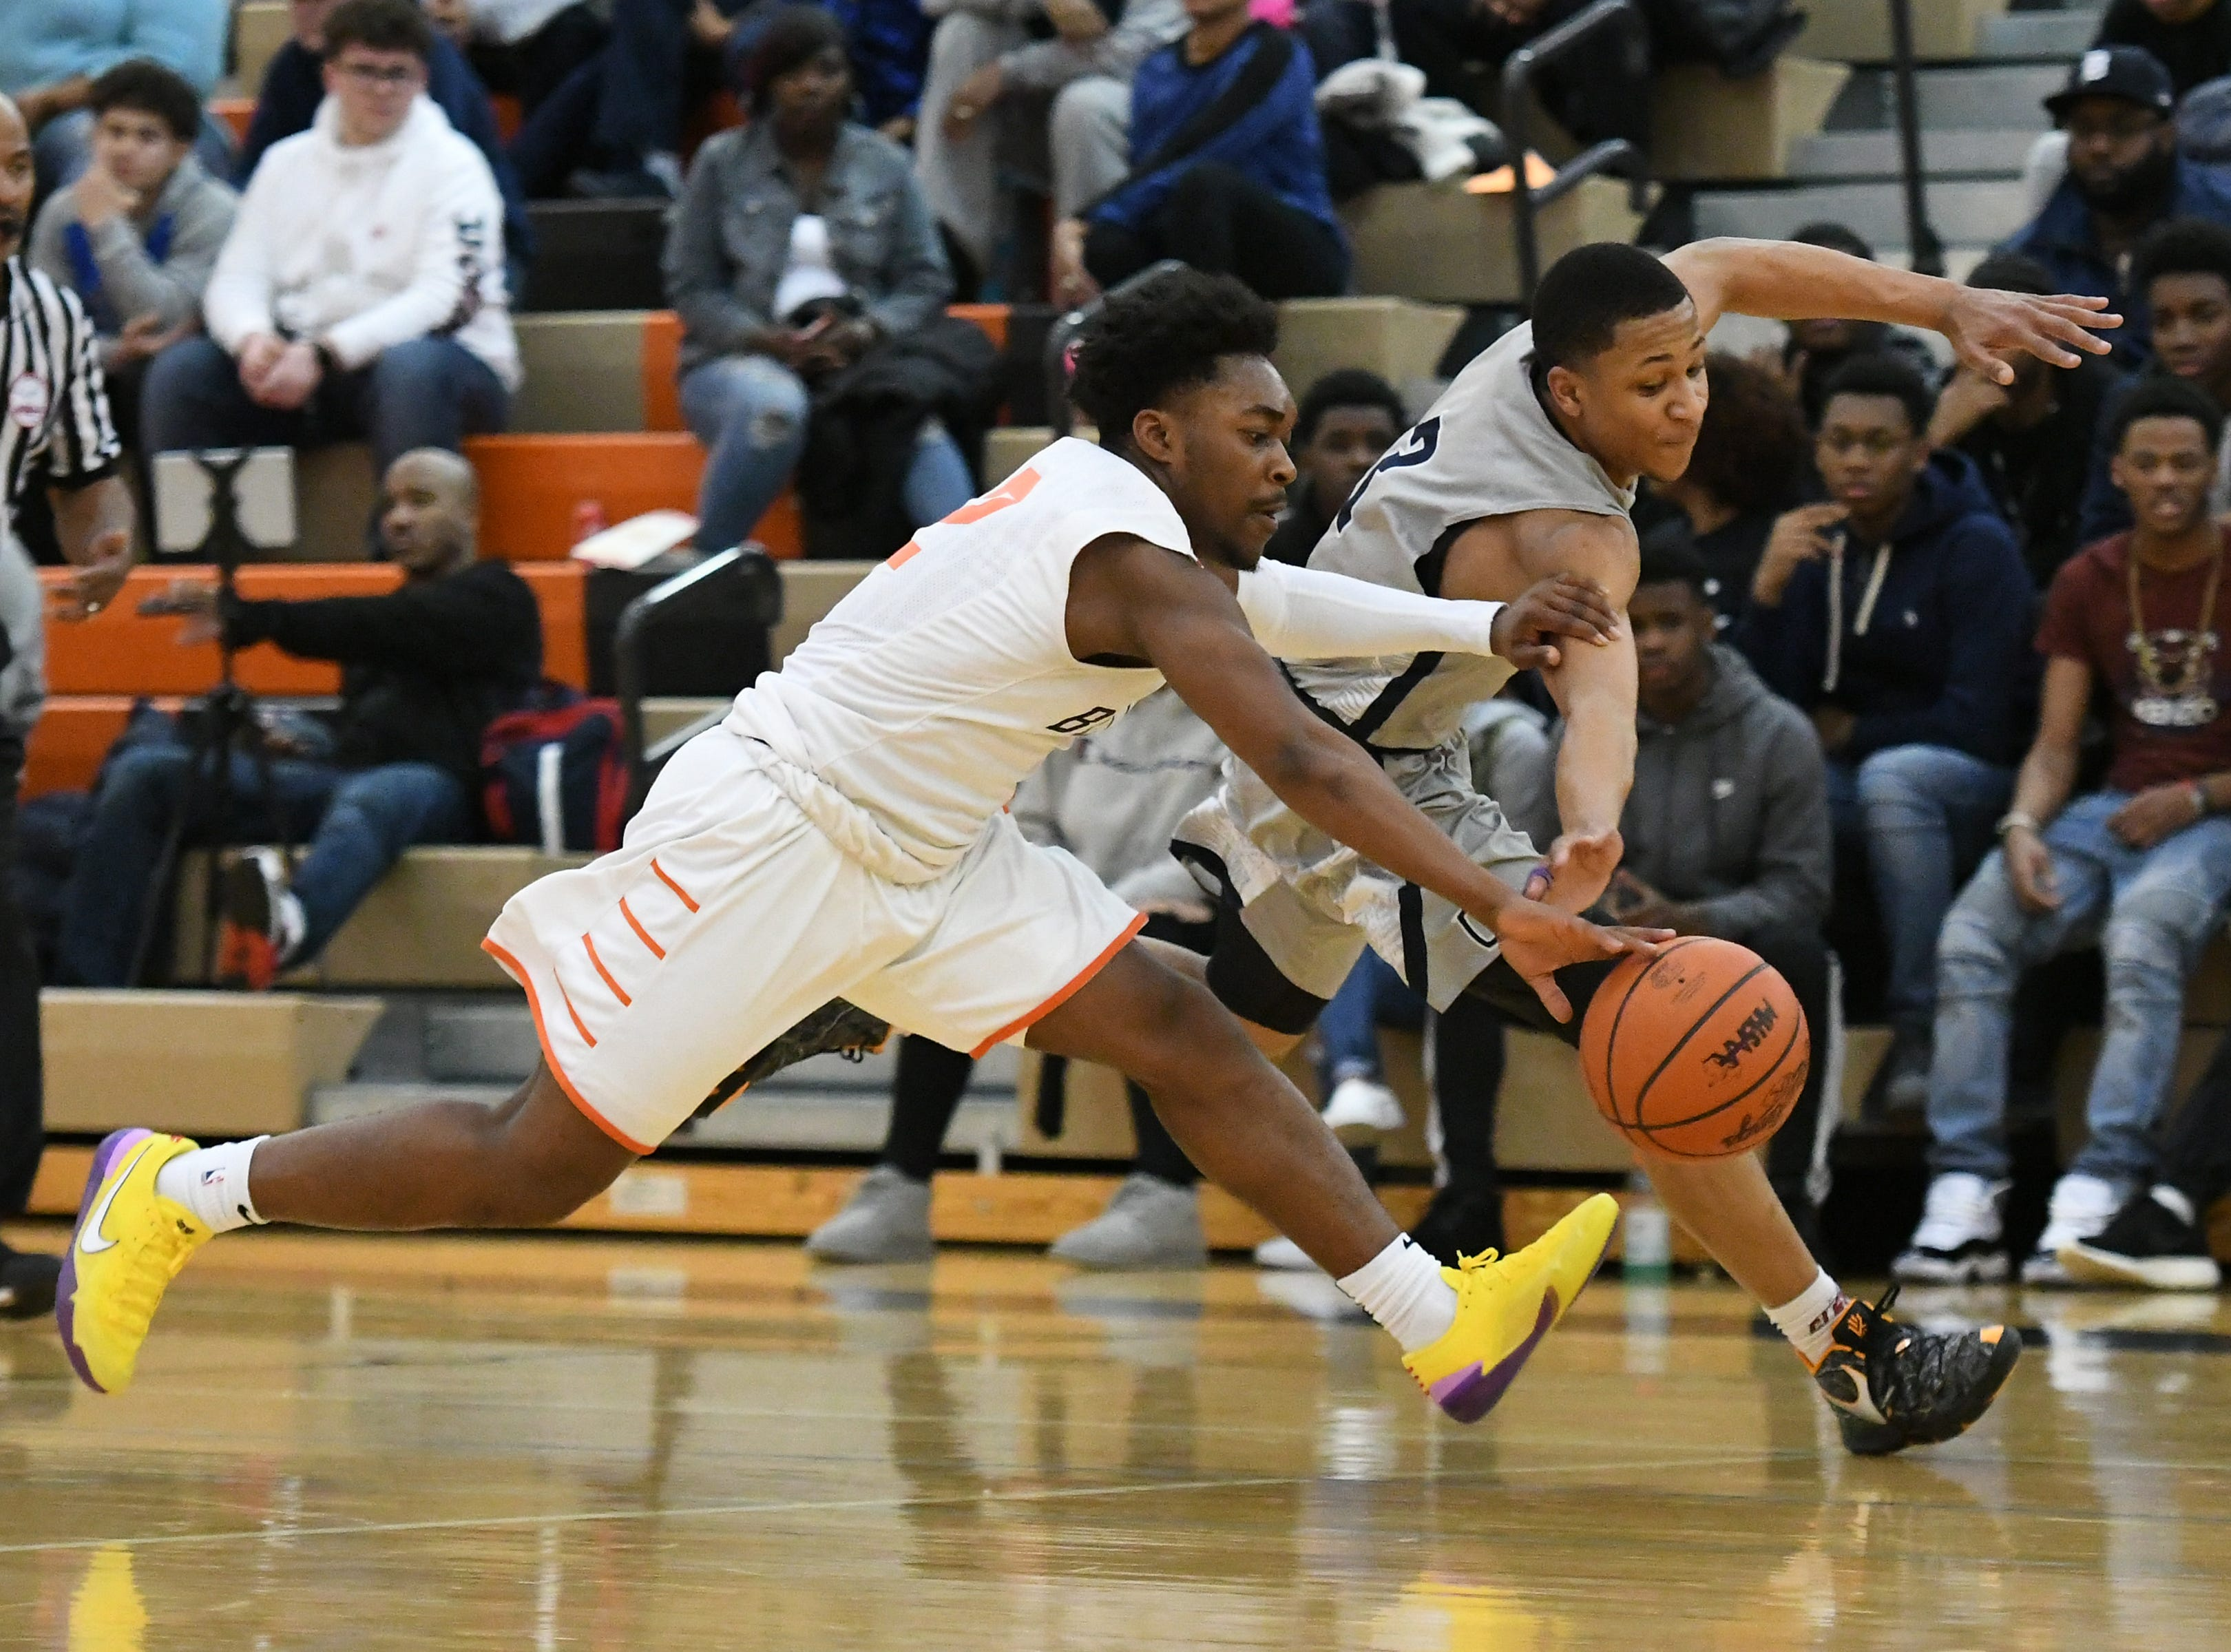 Belleville High School's Lorenzo Wright, left battles for a loose ball with John Glenn High School's Joe Moon IV, during the second quarter.